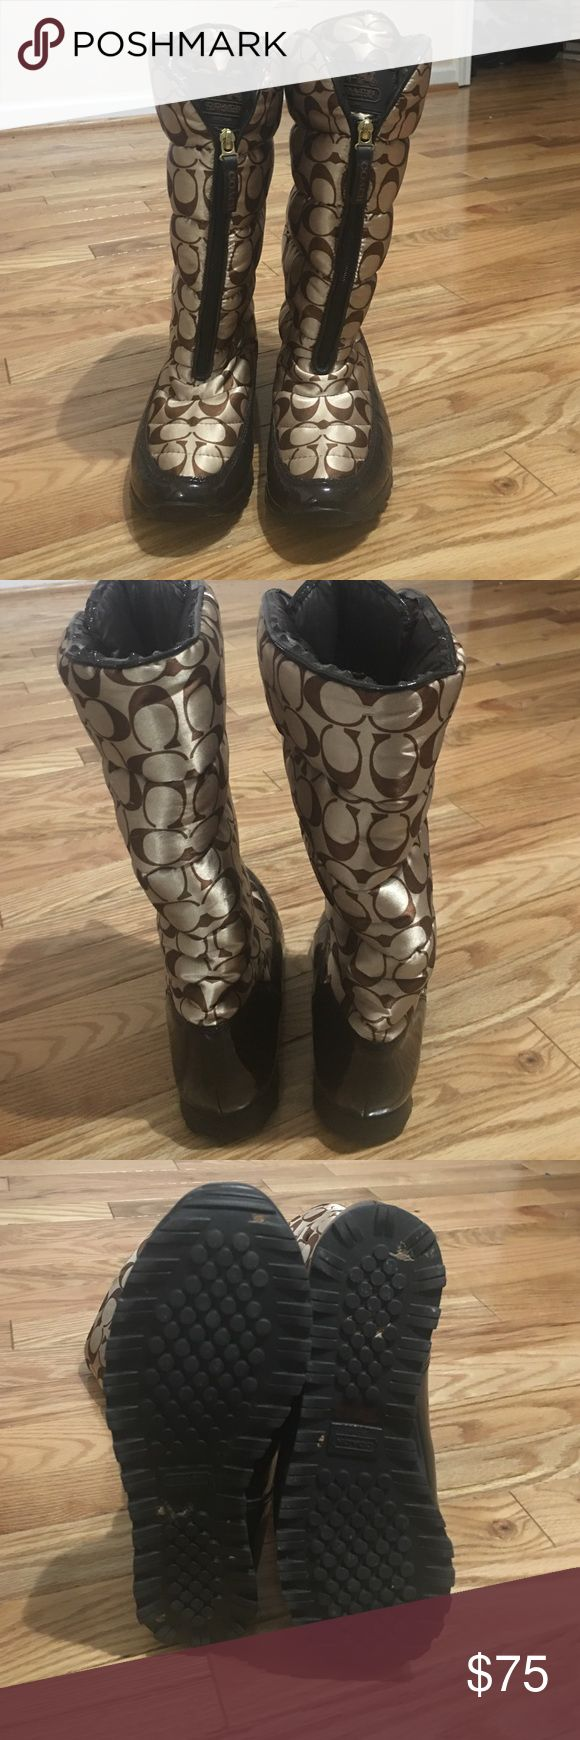 1000 Ideas About Coach Rain Boots On Pinterest Coach